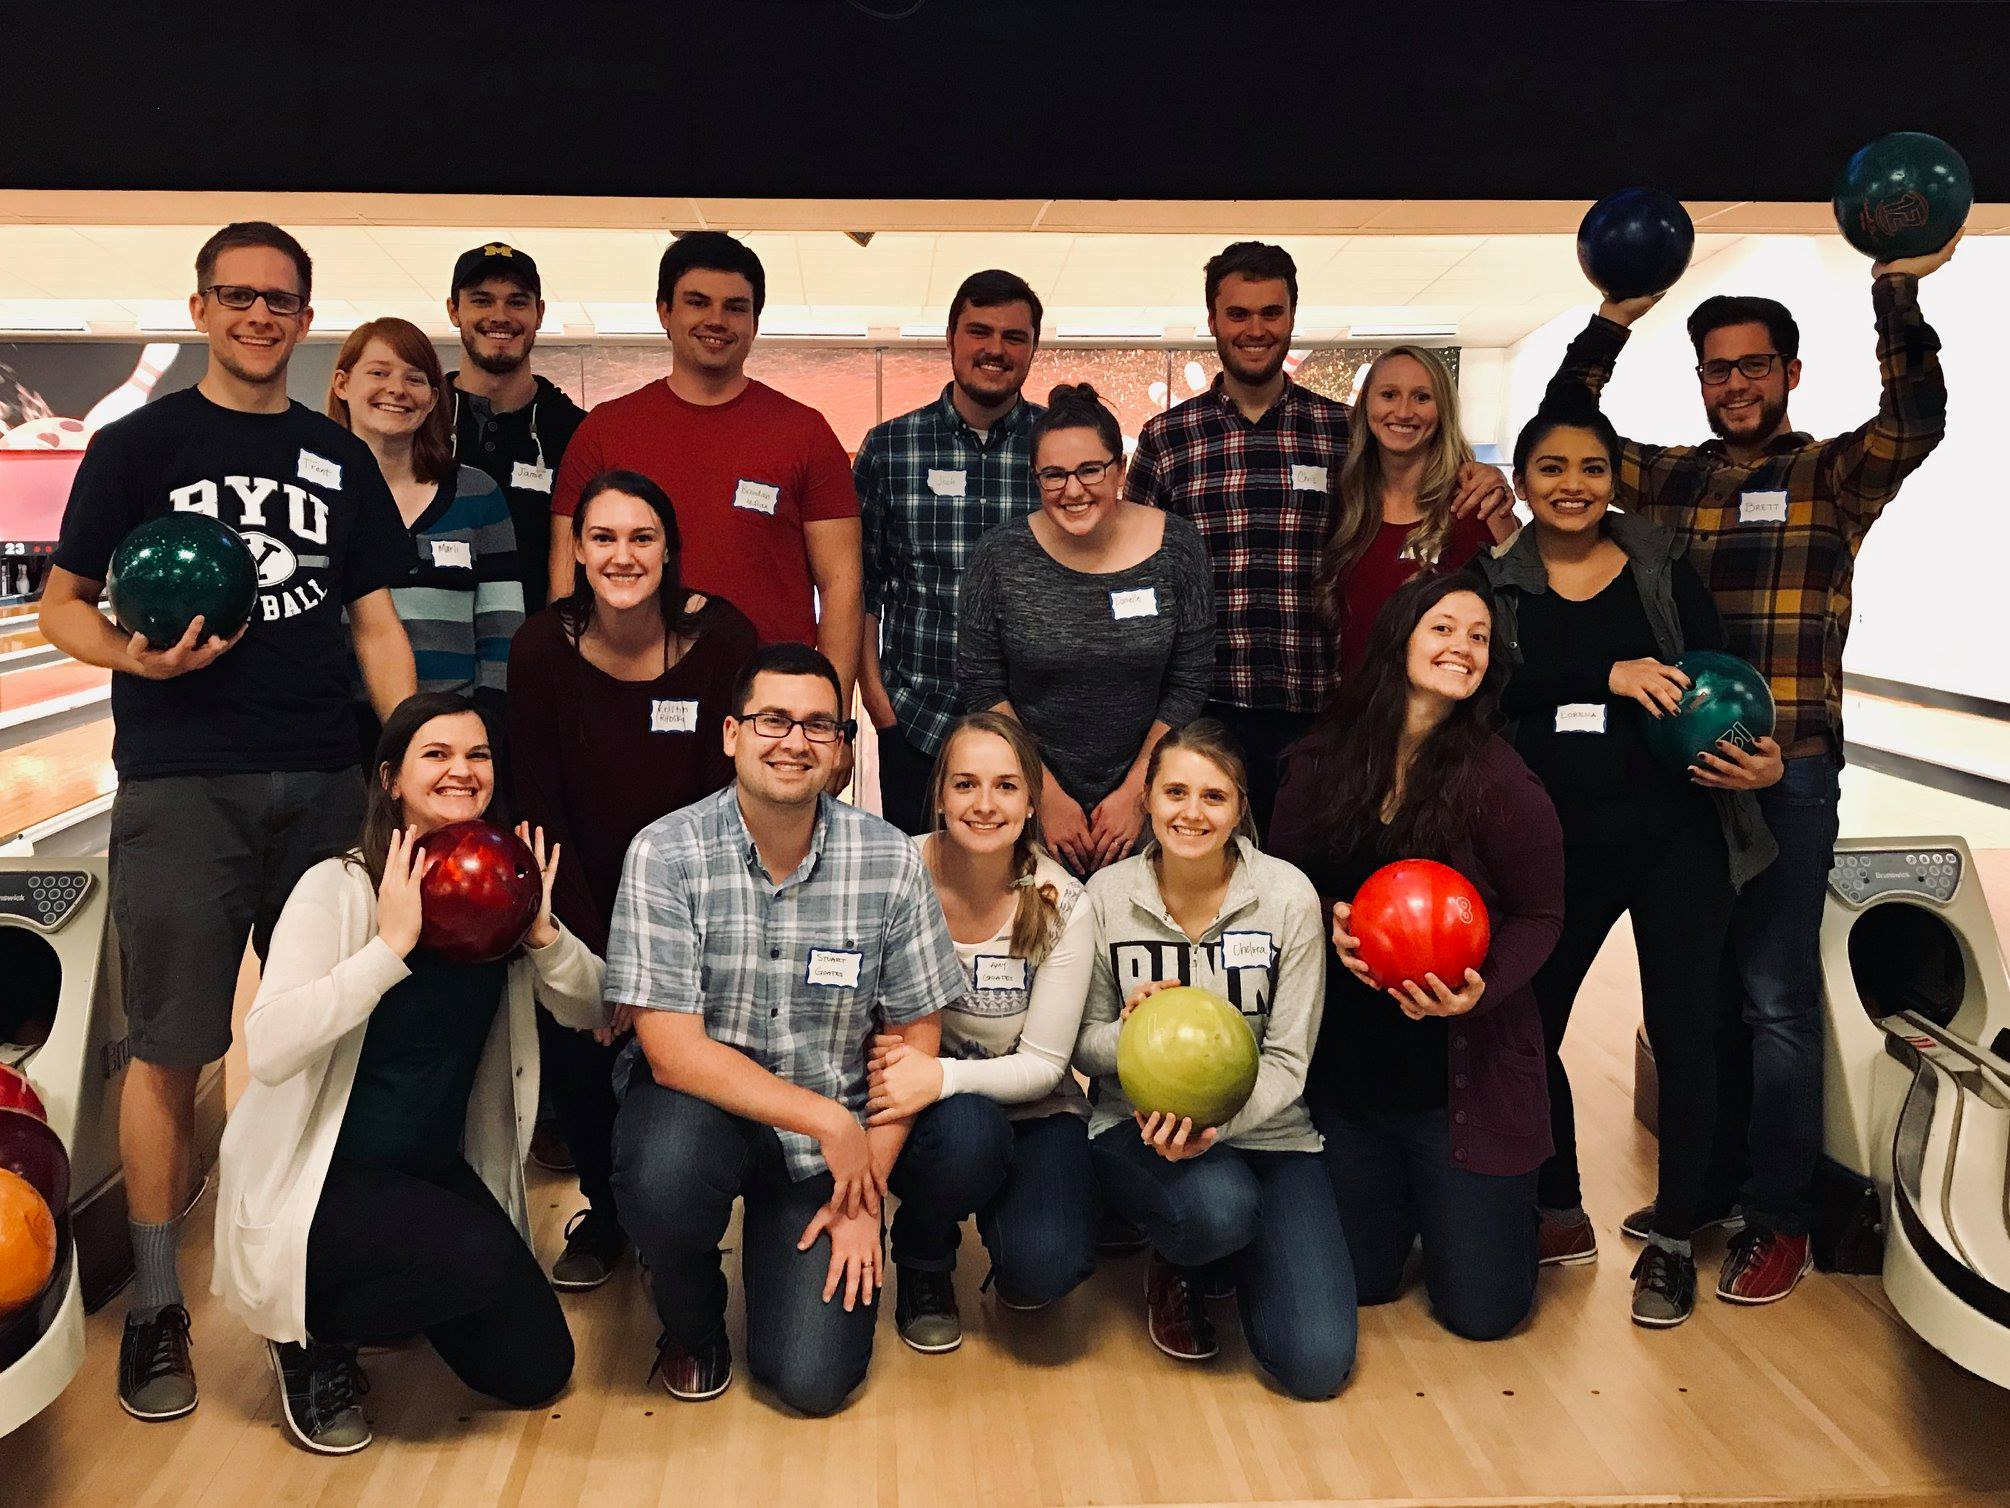 A group of OUWB students and their significant others pose with their bowling balls at the bowling alley.